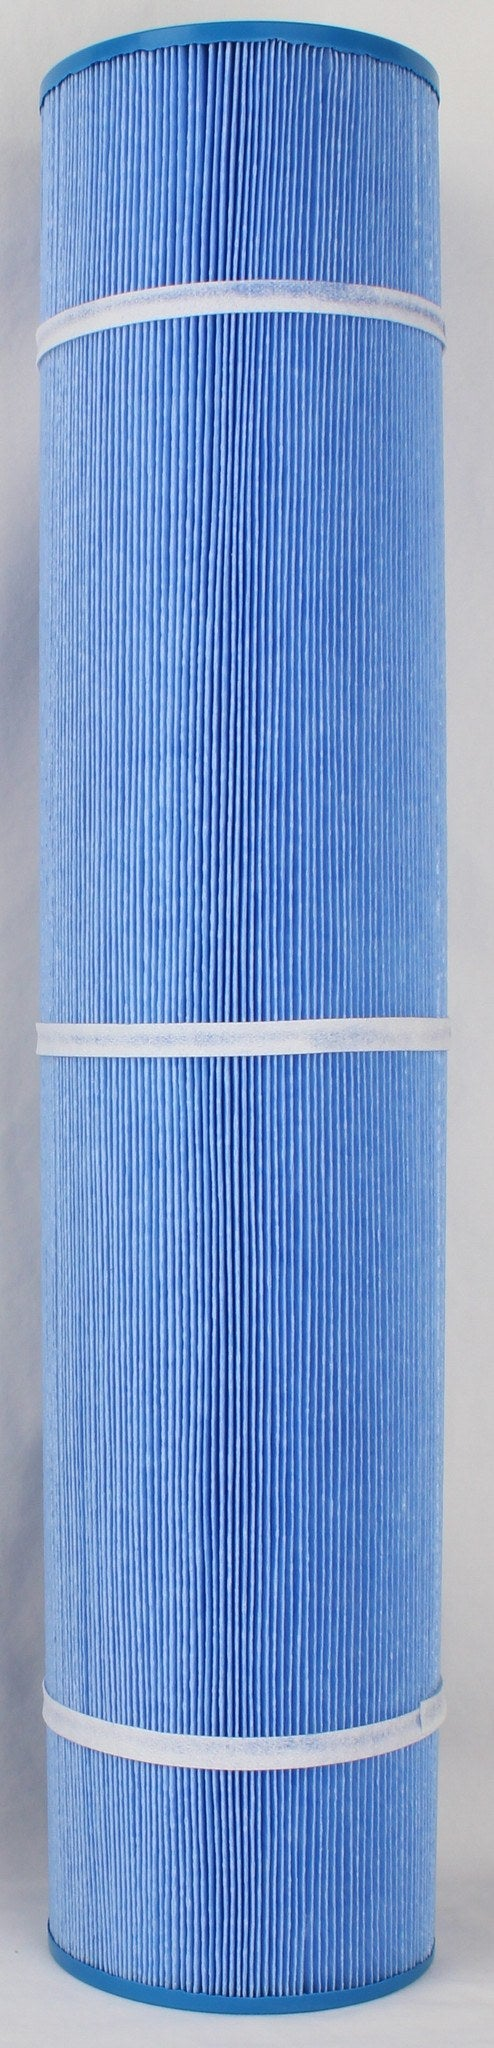 Replaces Unicel C-4995RA, Pleatco PCAL100-M - Pool & Spa Filter Cartridge-Filter Cartridge-FilterDeal.com